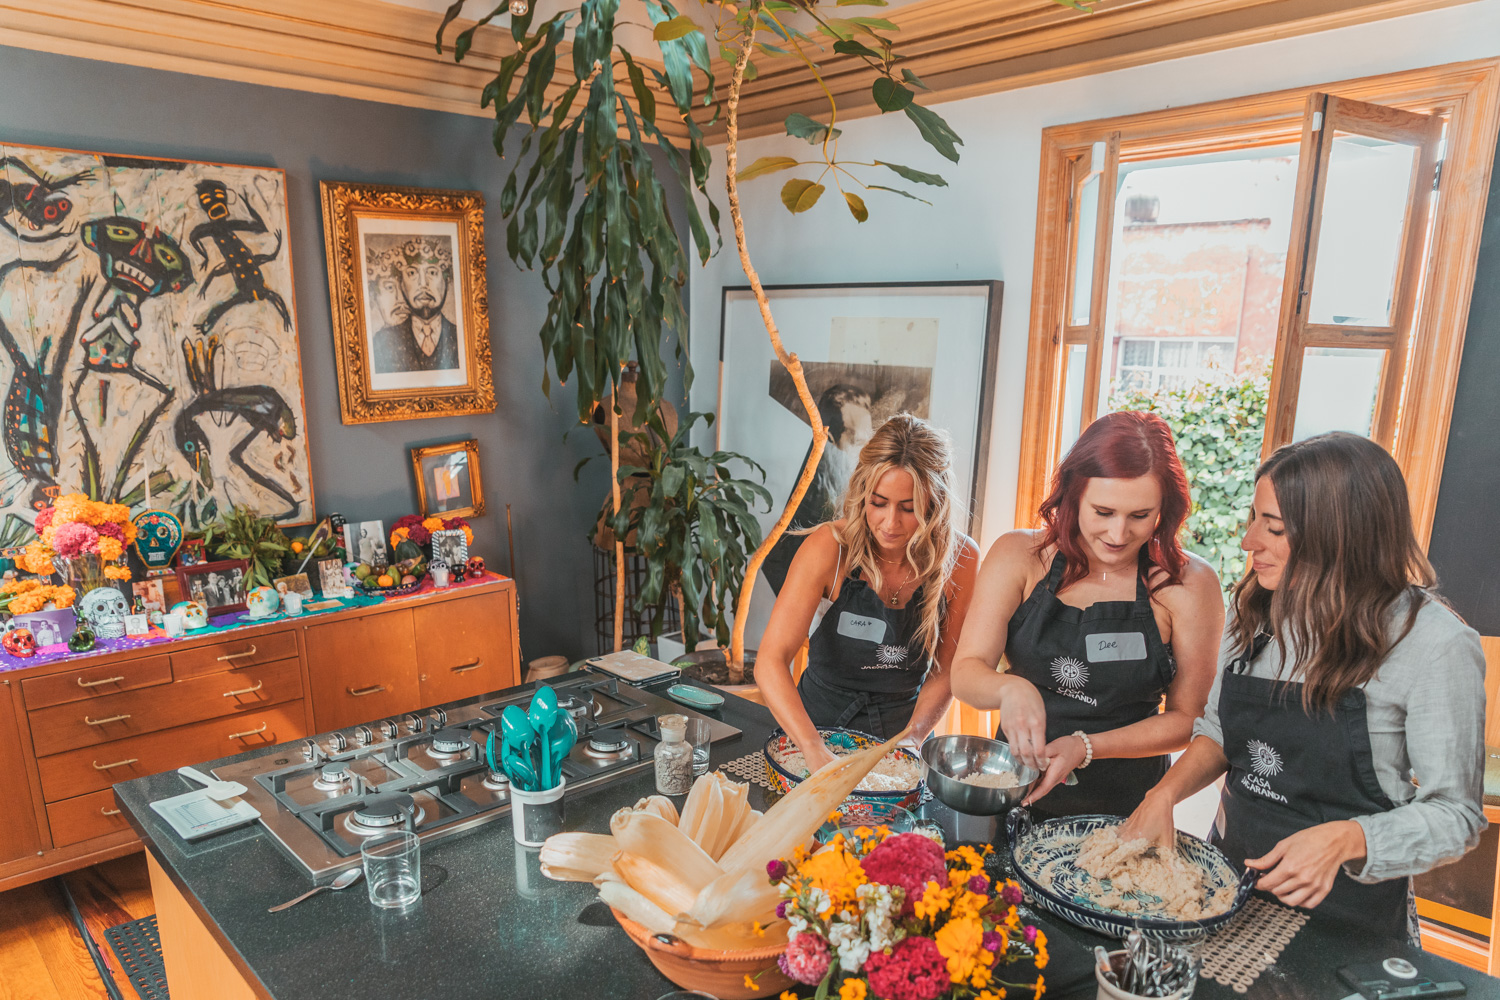 Casa Jacaranda cooking class // What to Do In Mexico City for Day of the Dead // www.readysetjetset.net #readysetjetset #mexicocity #dayofthedead #traveltips #blogtips